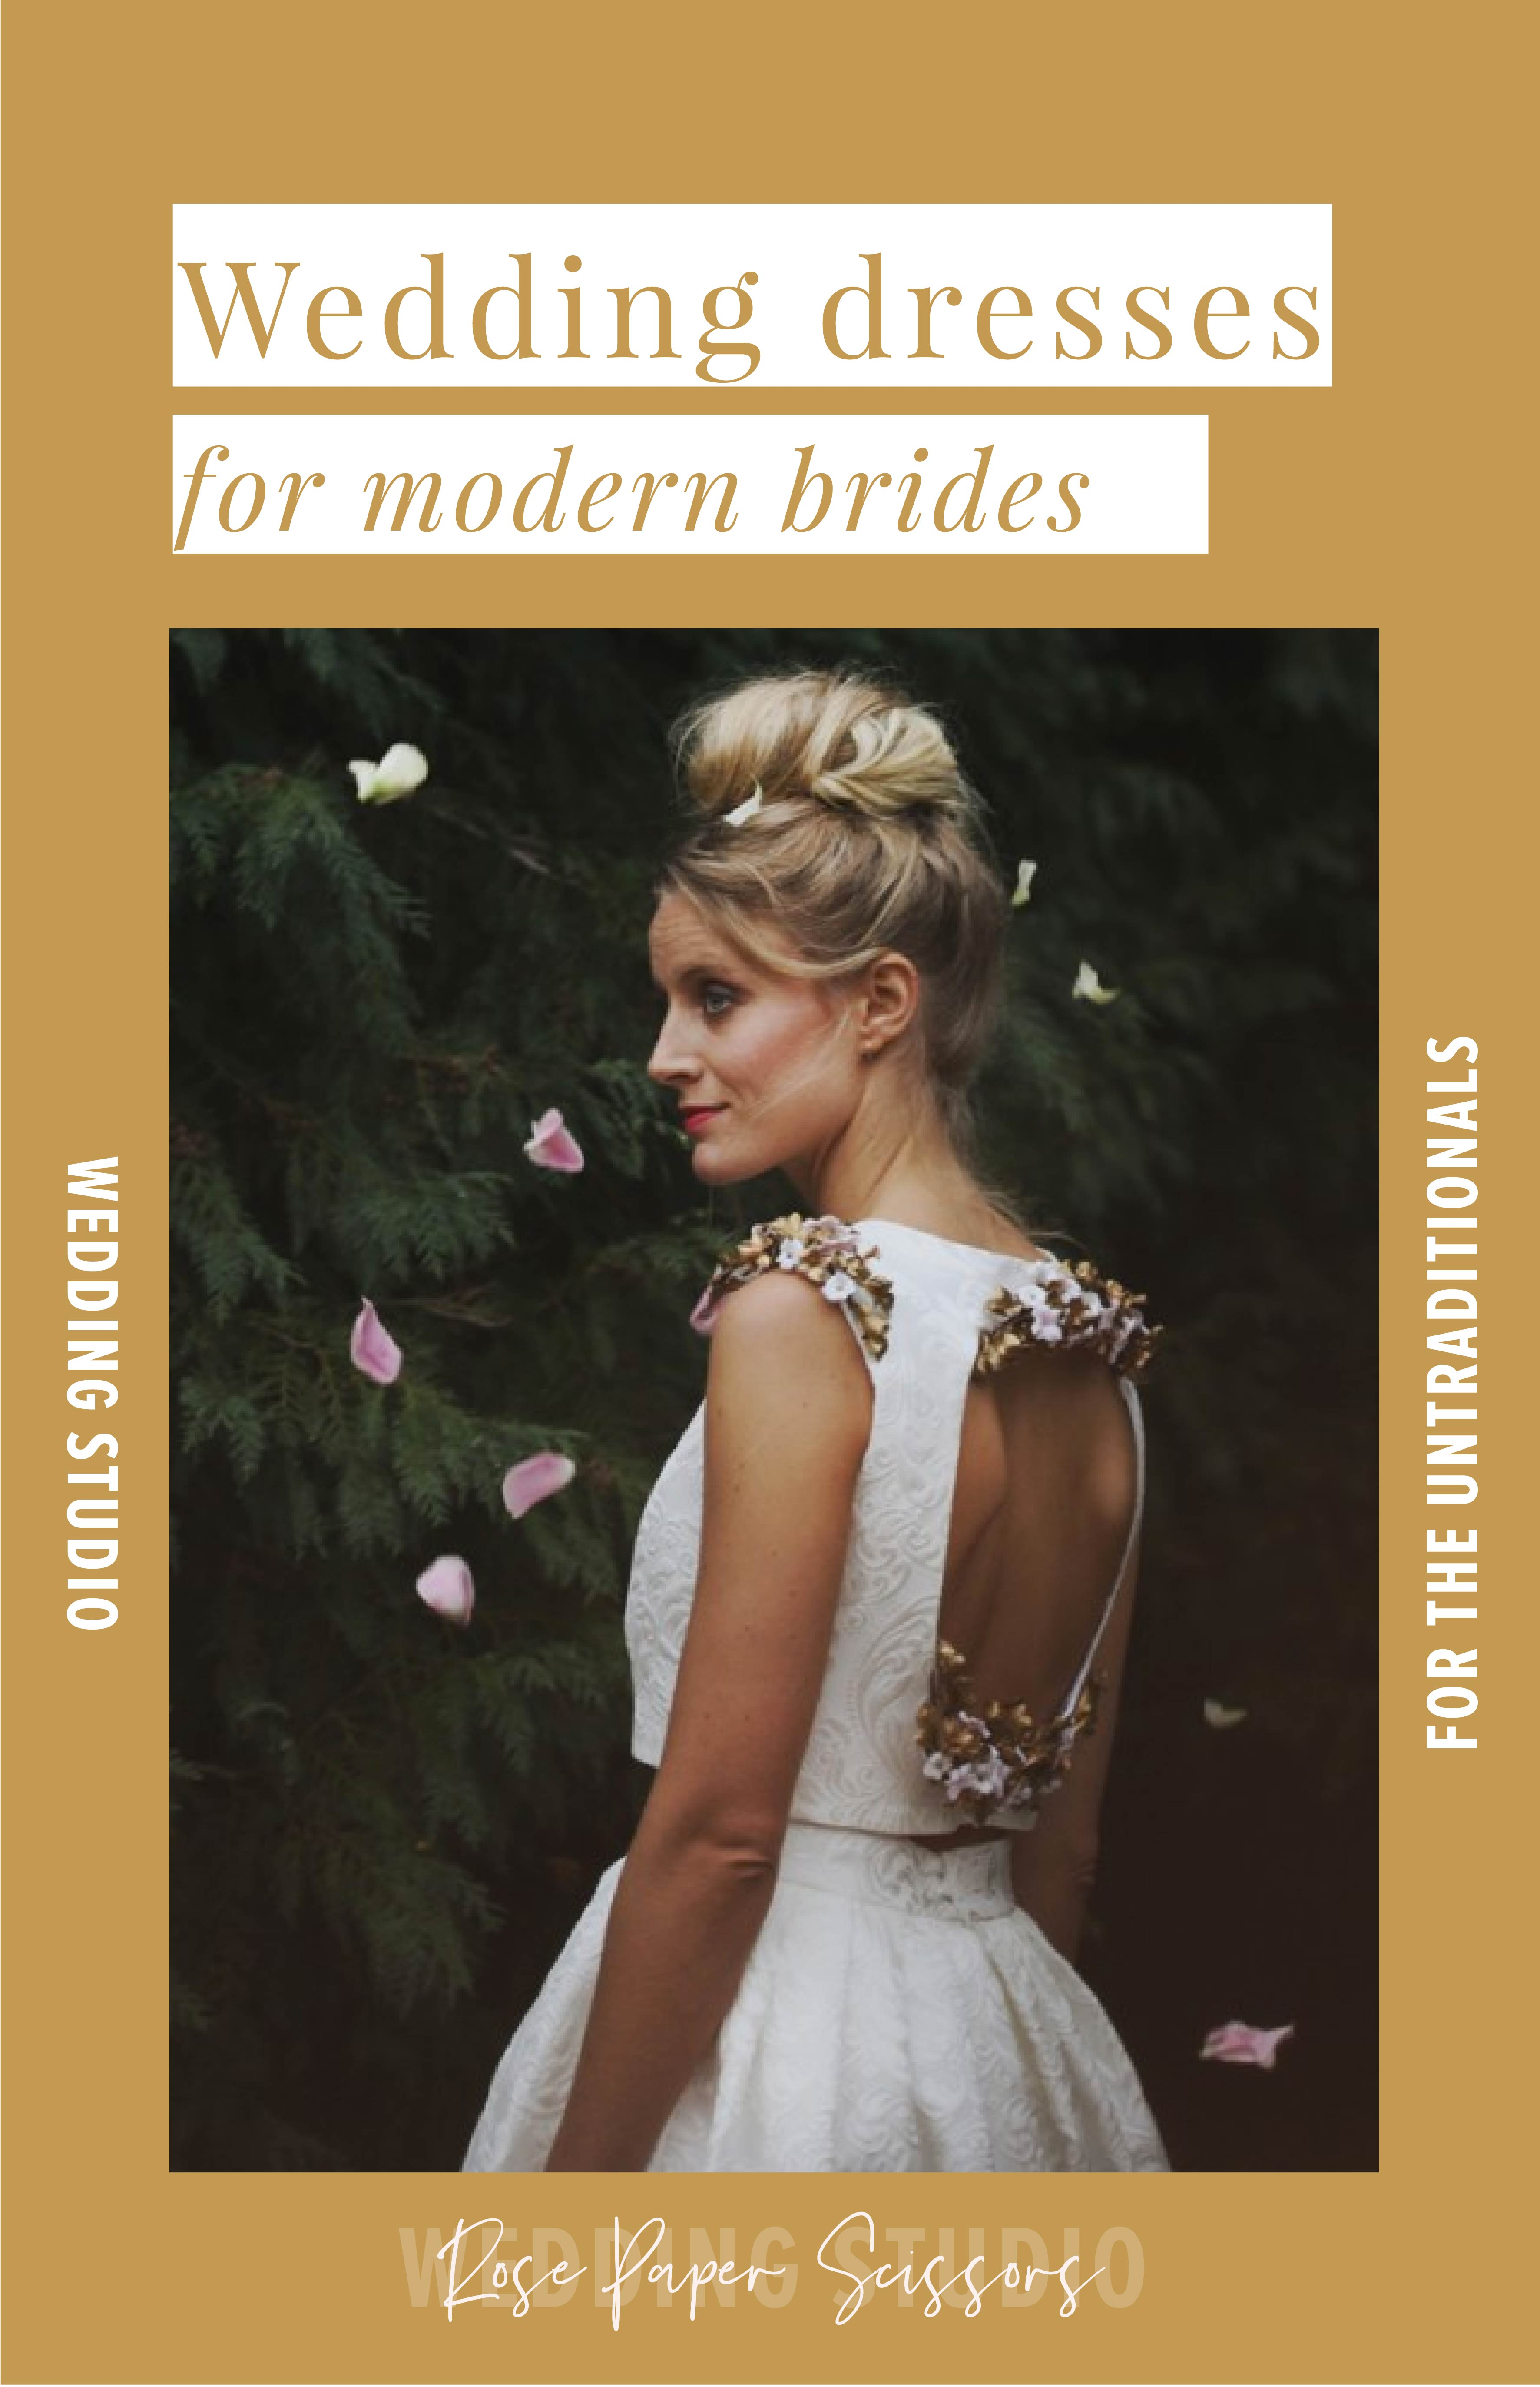 c2f3f82b7e The Modern Bride: Best Wedding Dresses for the Untraditional Bride